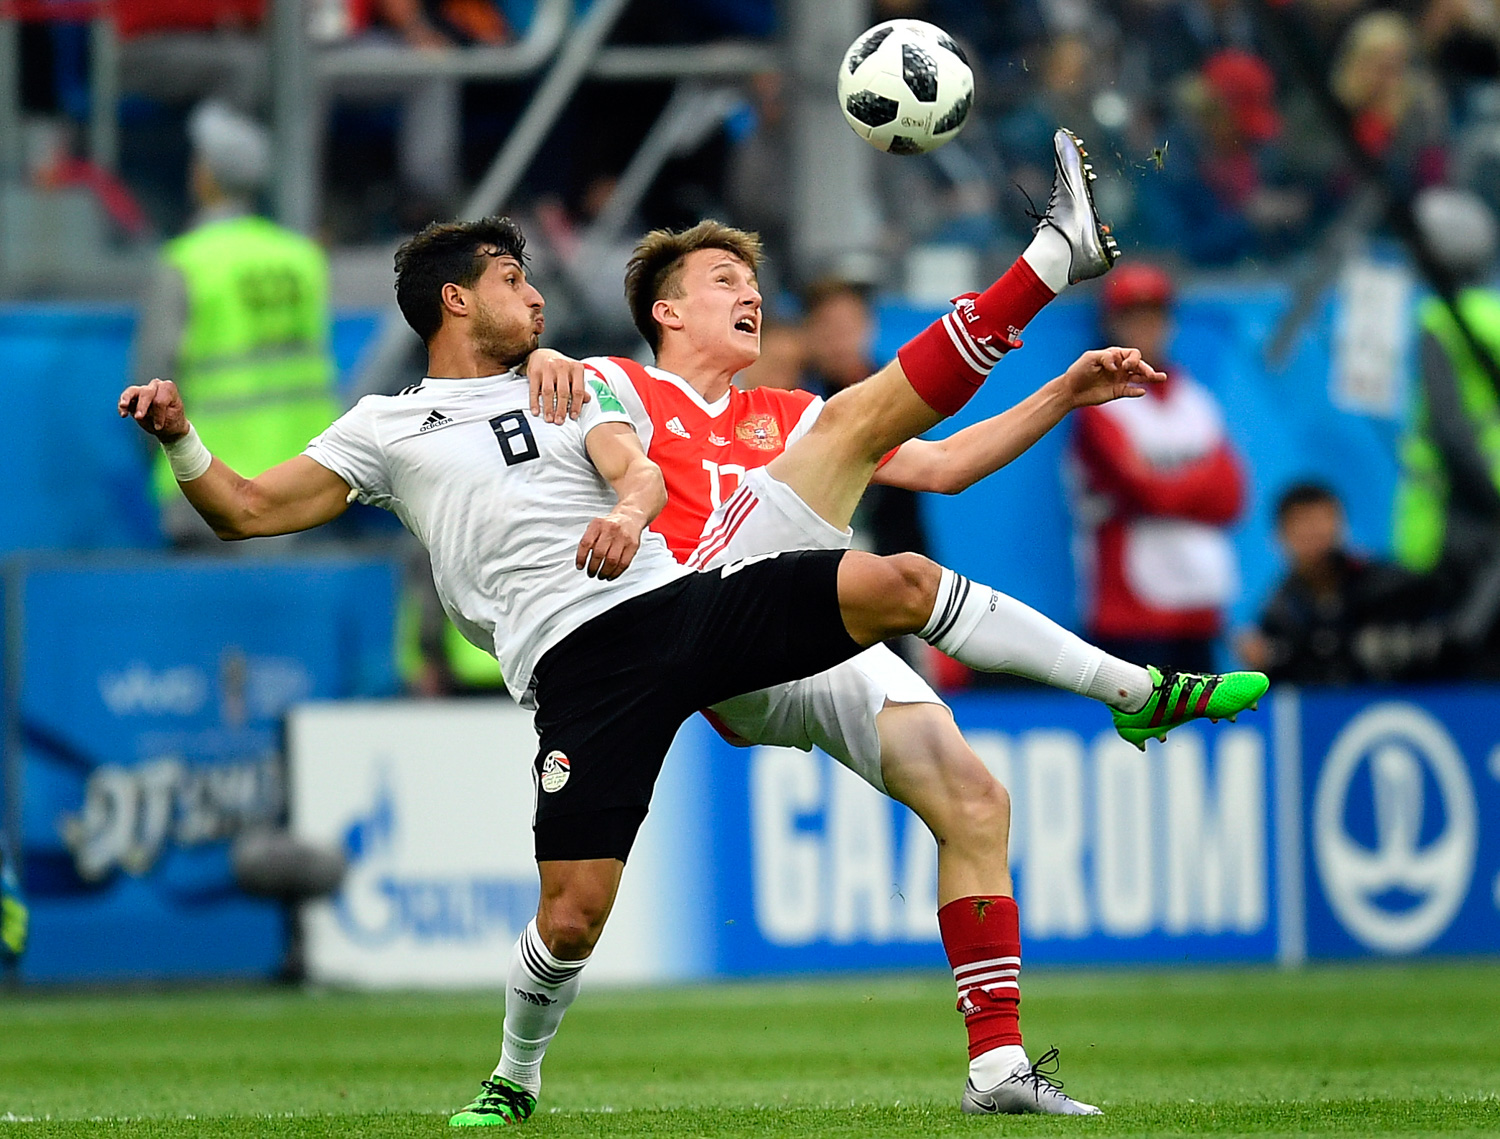 <div class='meta'><div class='origin-logo' data-origin='none'></div><span class='caption-text' data-credit='Martin Meissner/AP'>Egypt's Tarek Hamed, left, and Russia's Alexander Golovin compete for the ball during the group A match between Russia and Egypt</span></div>